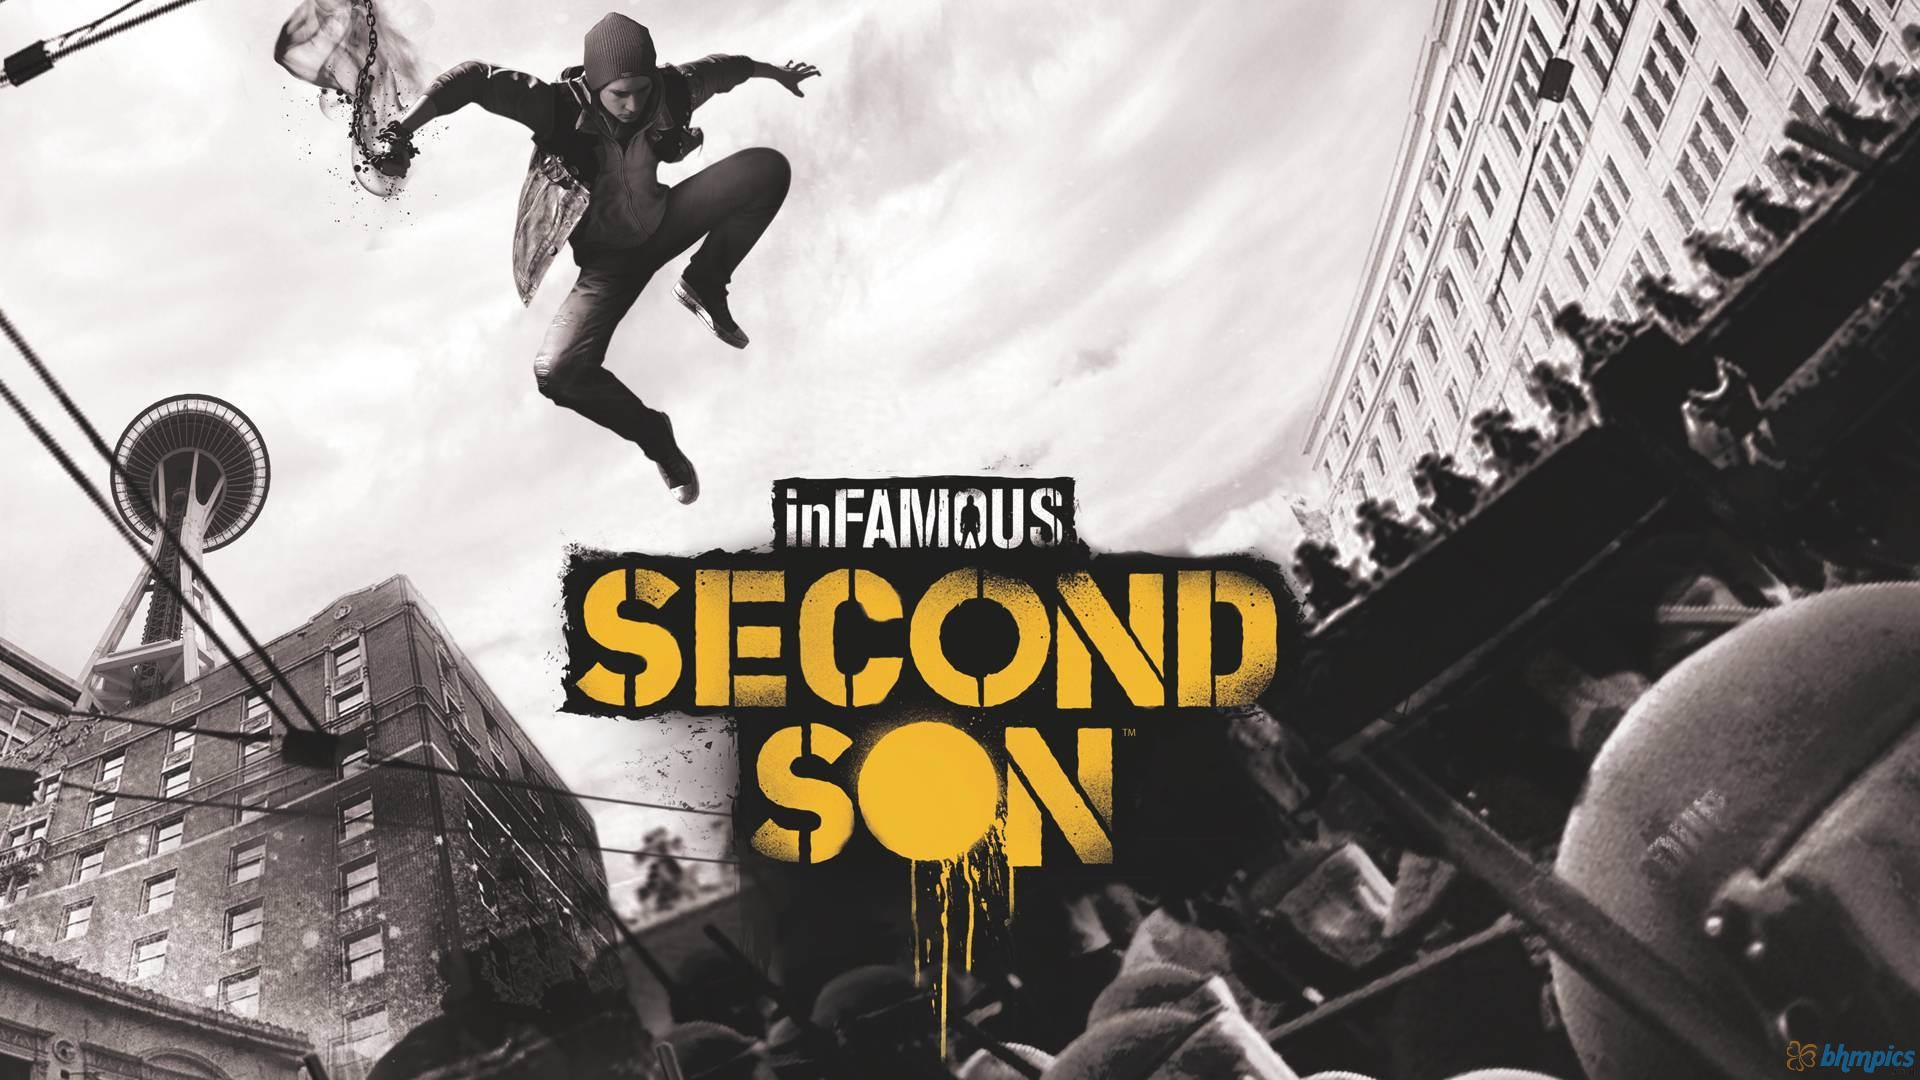 infamous_second_son-1920x1080